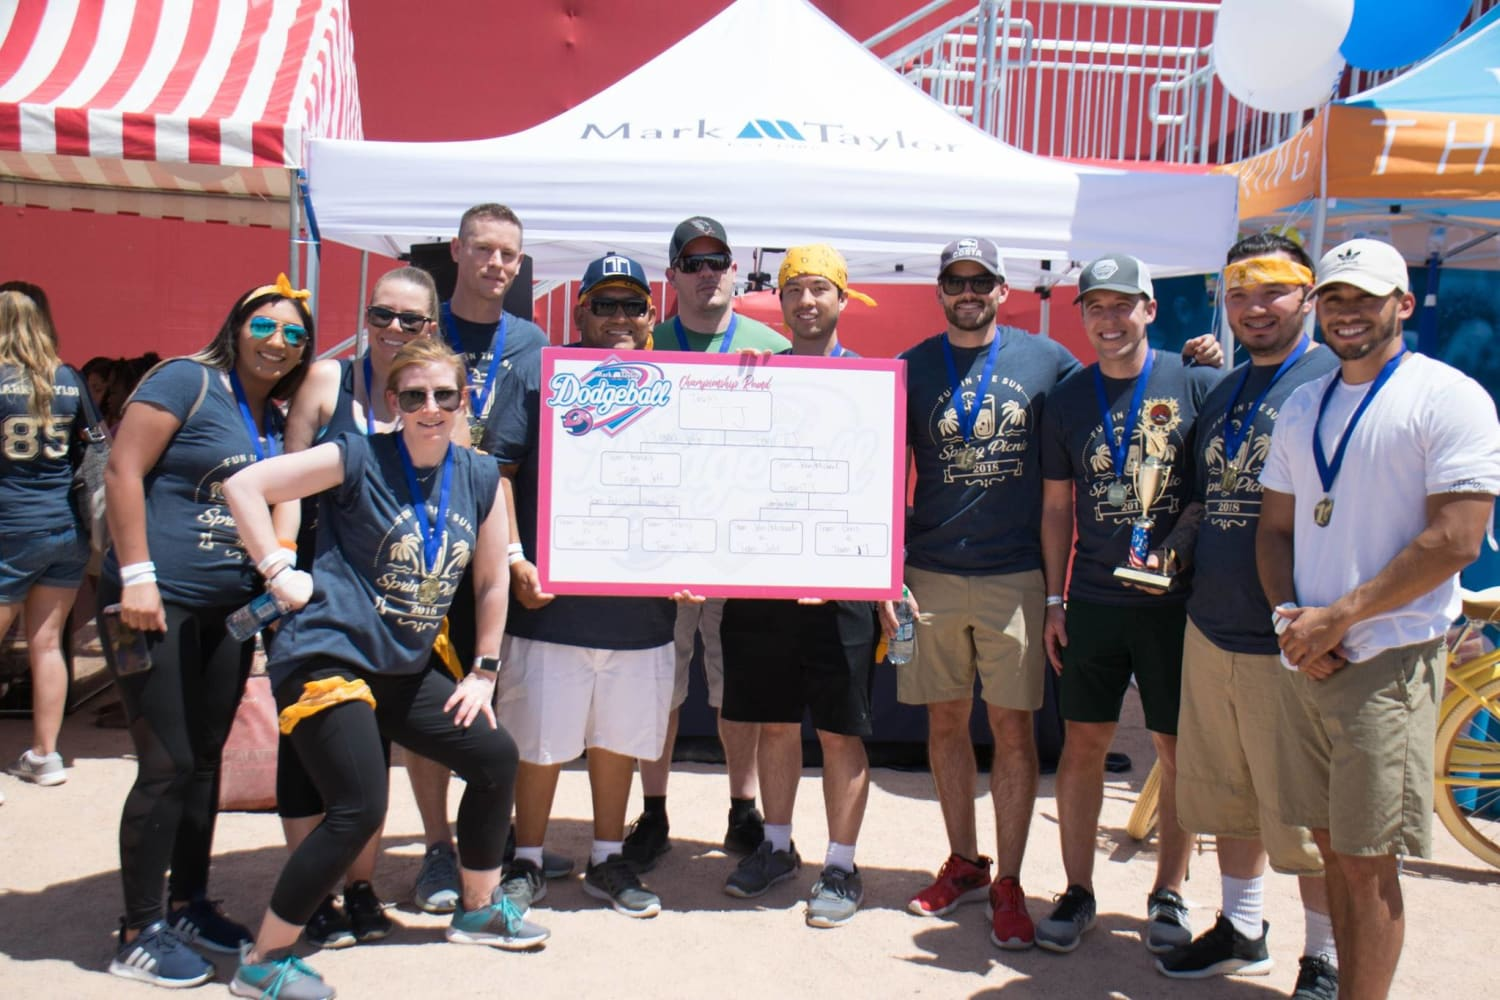 Dodgeball winners posing for a photo at the  company picnic